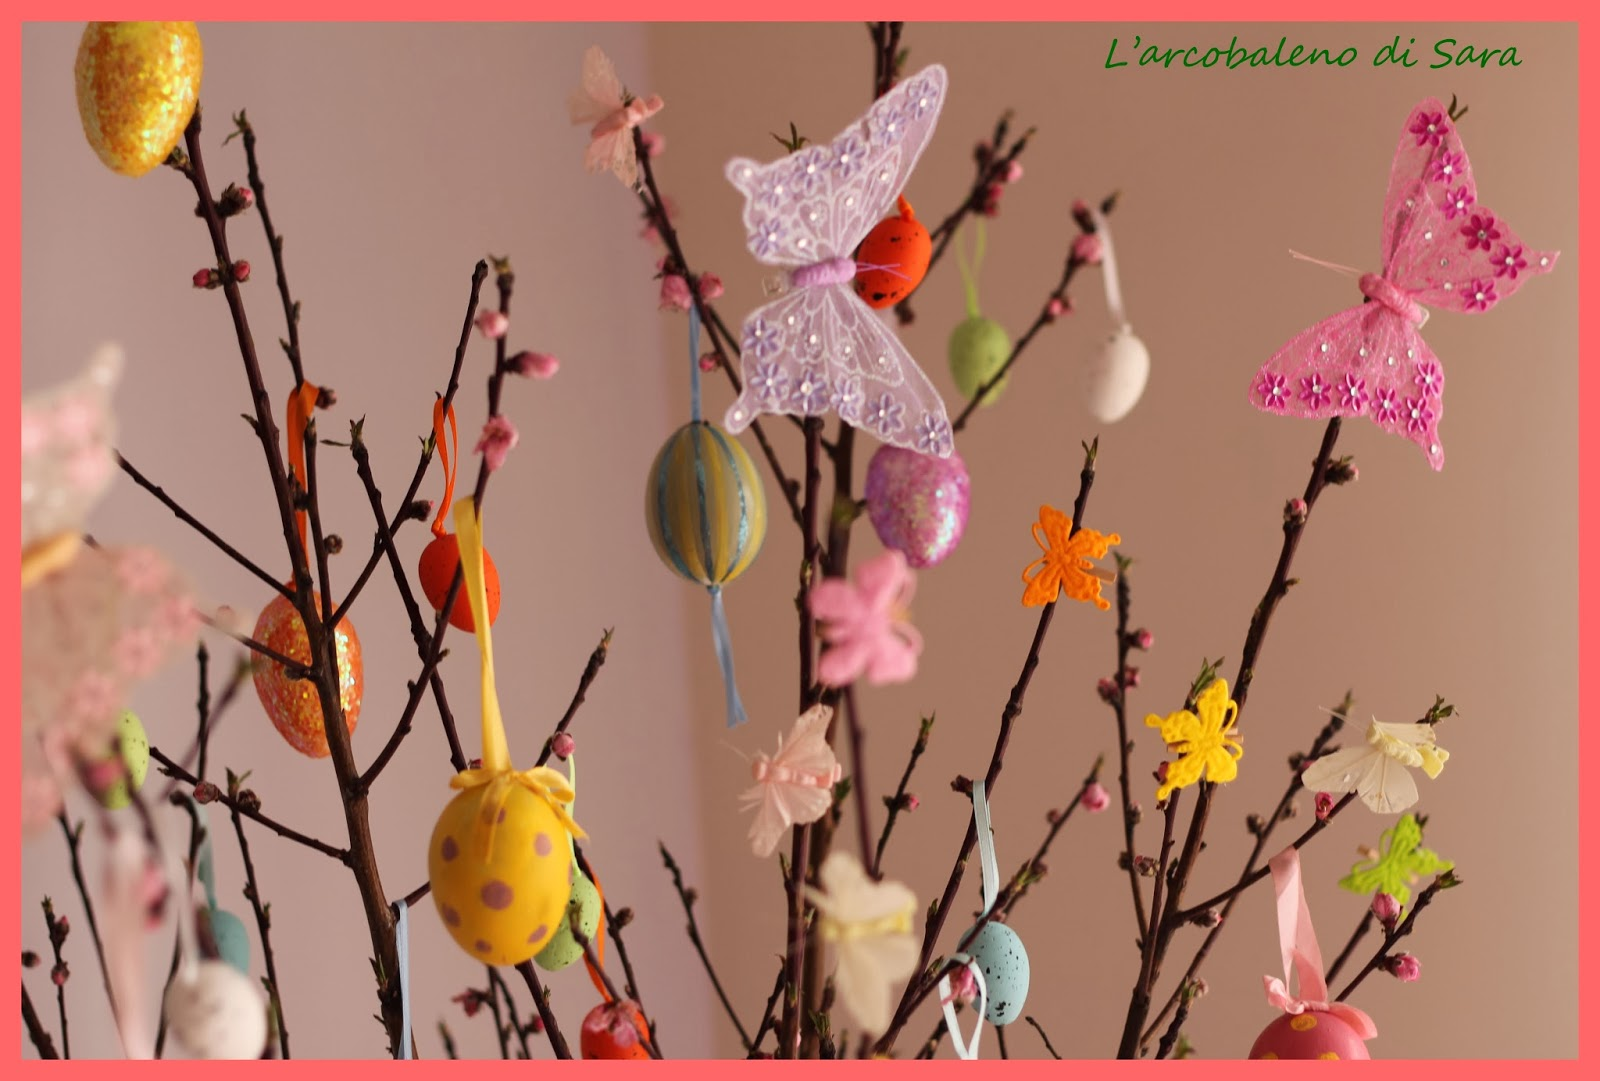 uova decorate per Pasqua